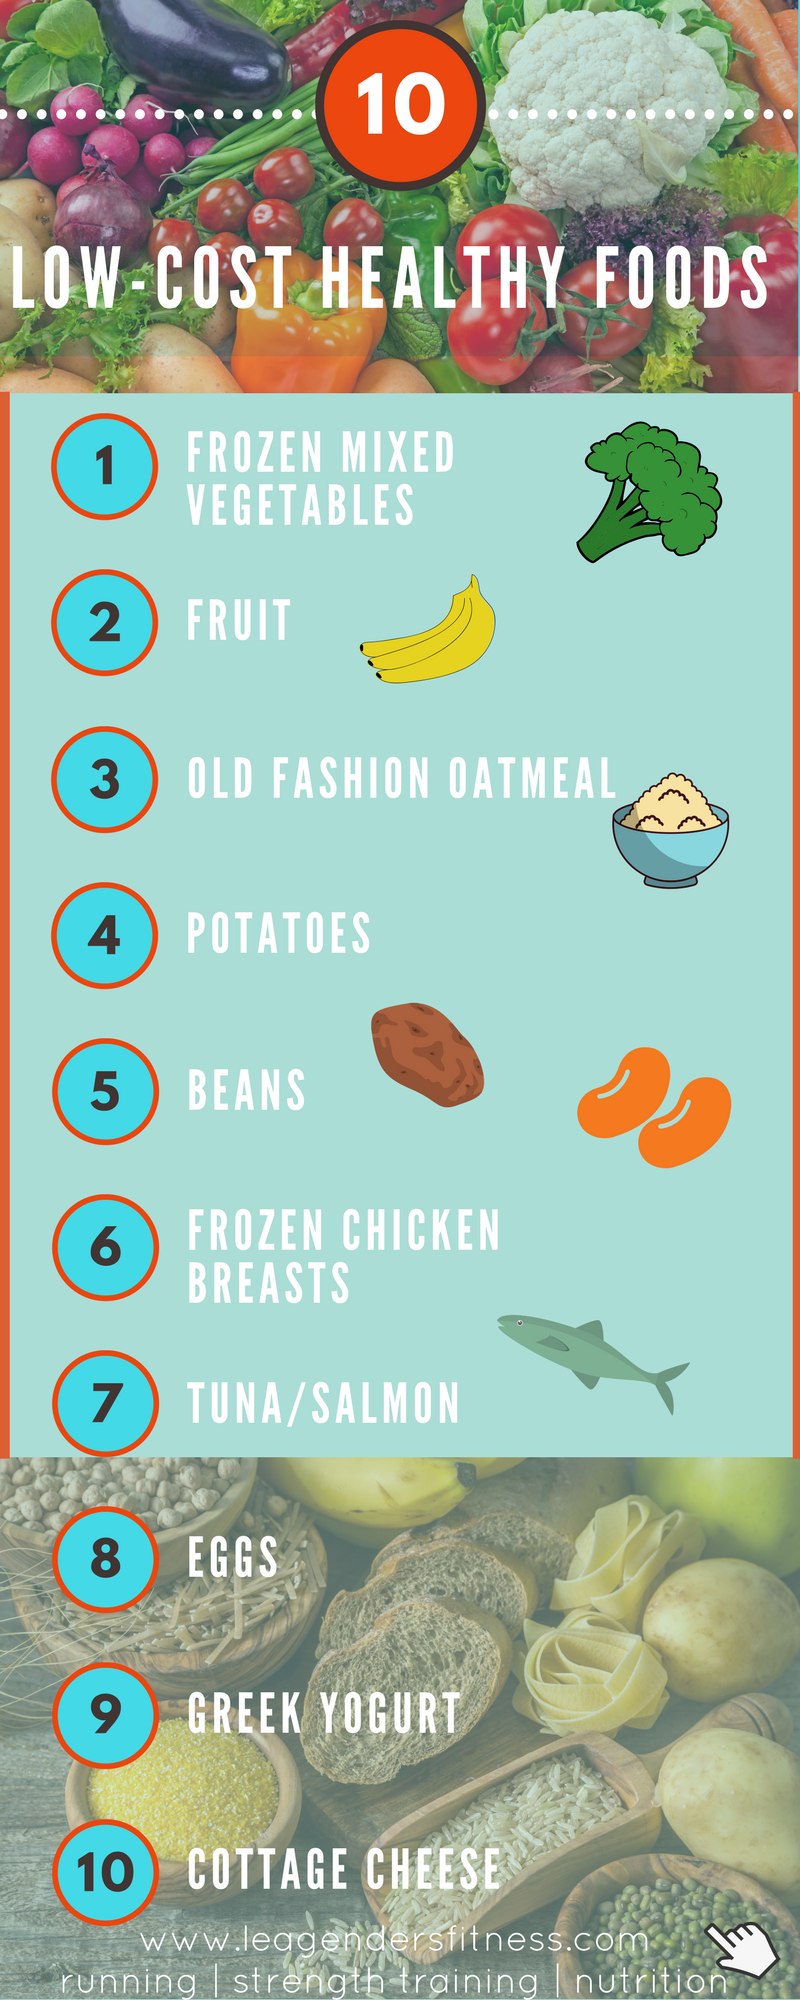 10 low cost healthy foods. save to pinterest for later.